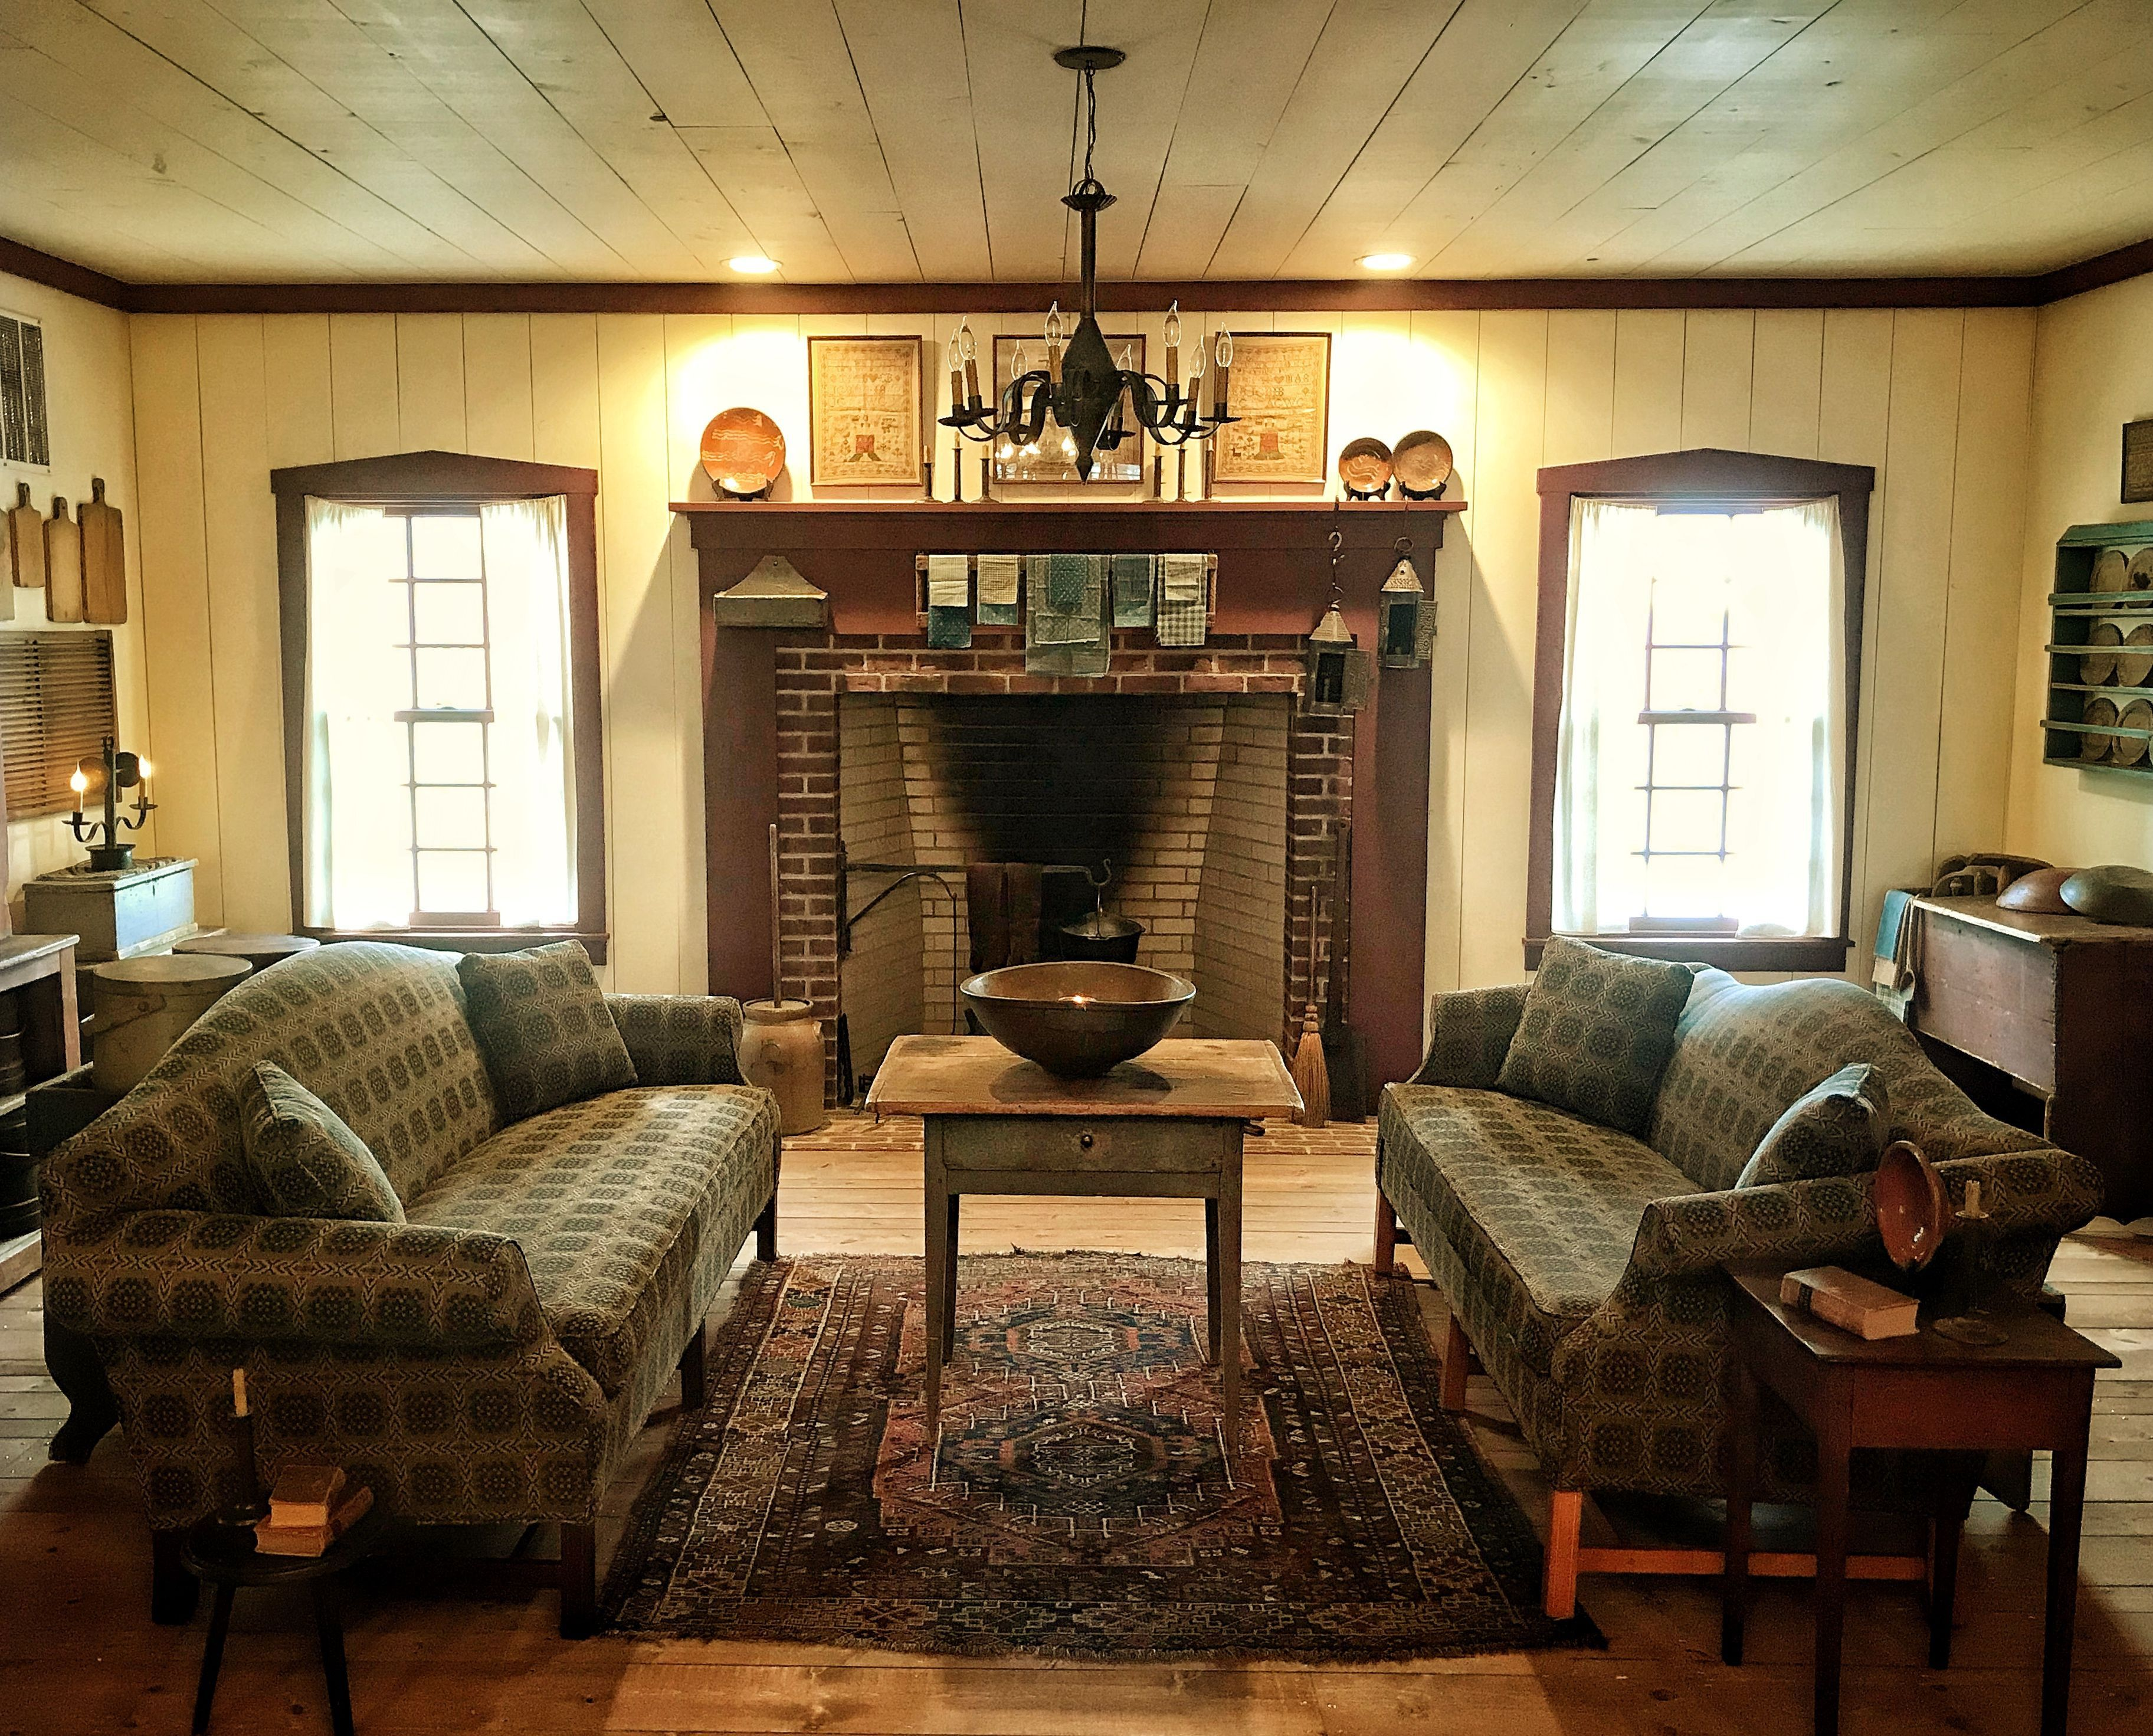 Primitive Living Room Furniture Awesome Keeping Room Peace Manor Dÿœ Living Room Decor Country Country Living Room Primitive Living Room #primitive #pictures #for #living #room